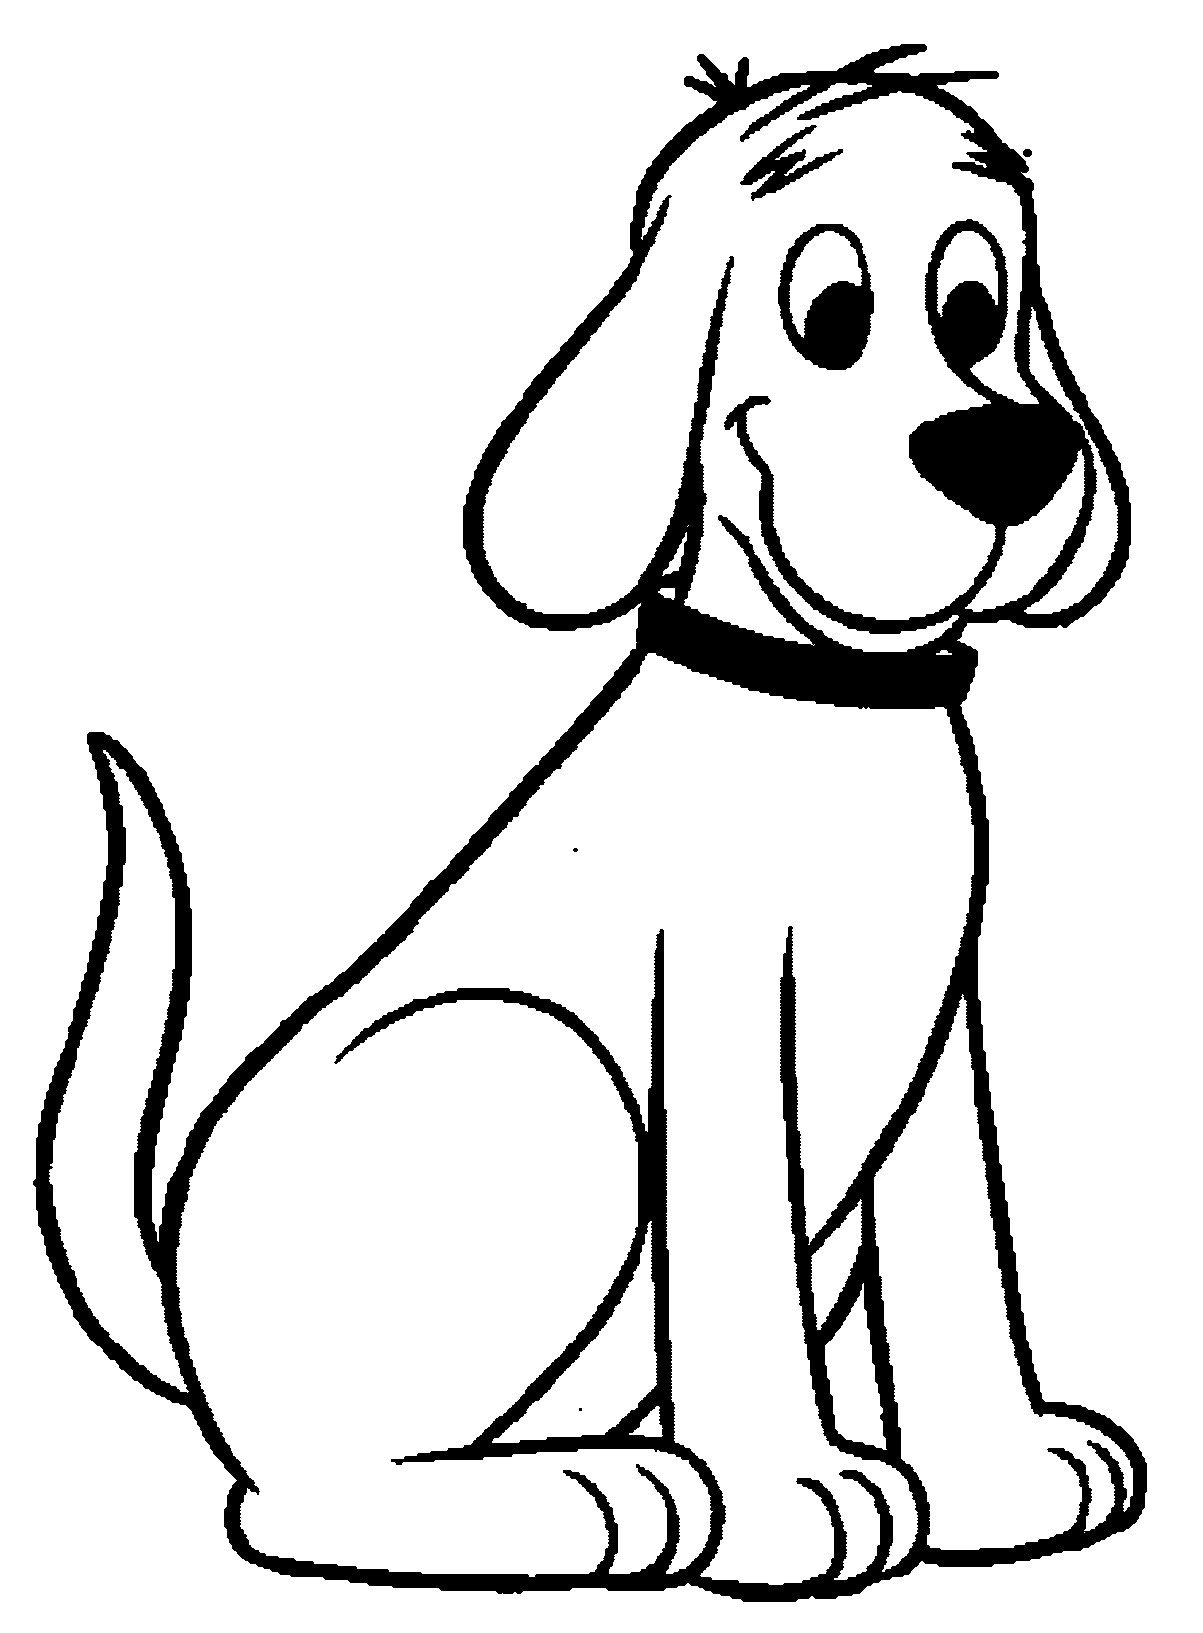 dog coloring in puppy dog pals coloring pages to download and print for free dog coloring in